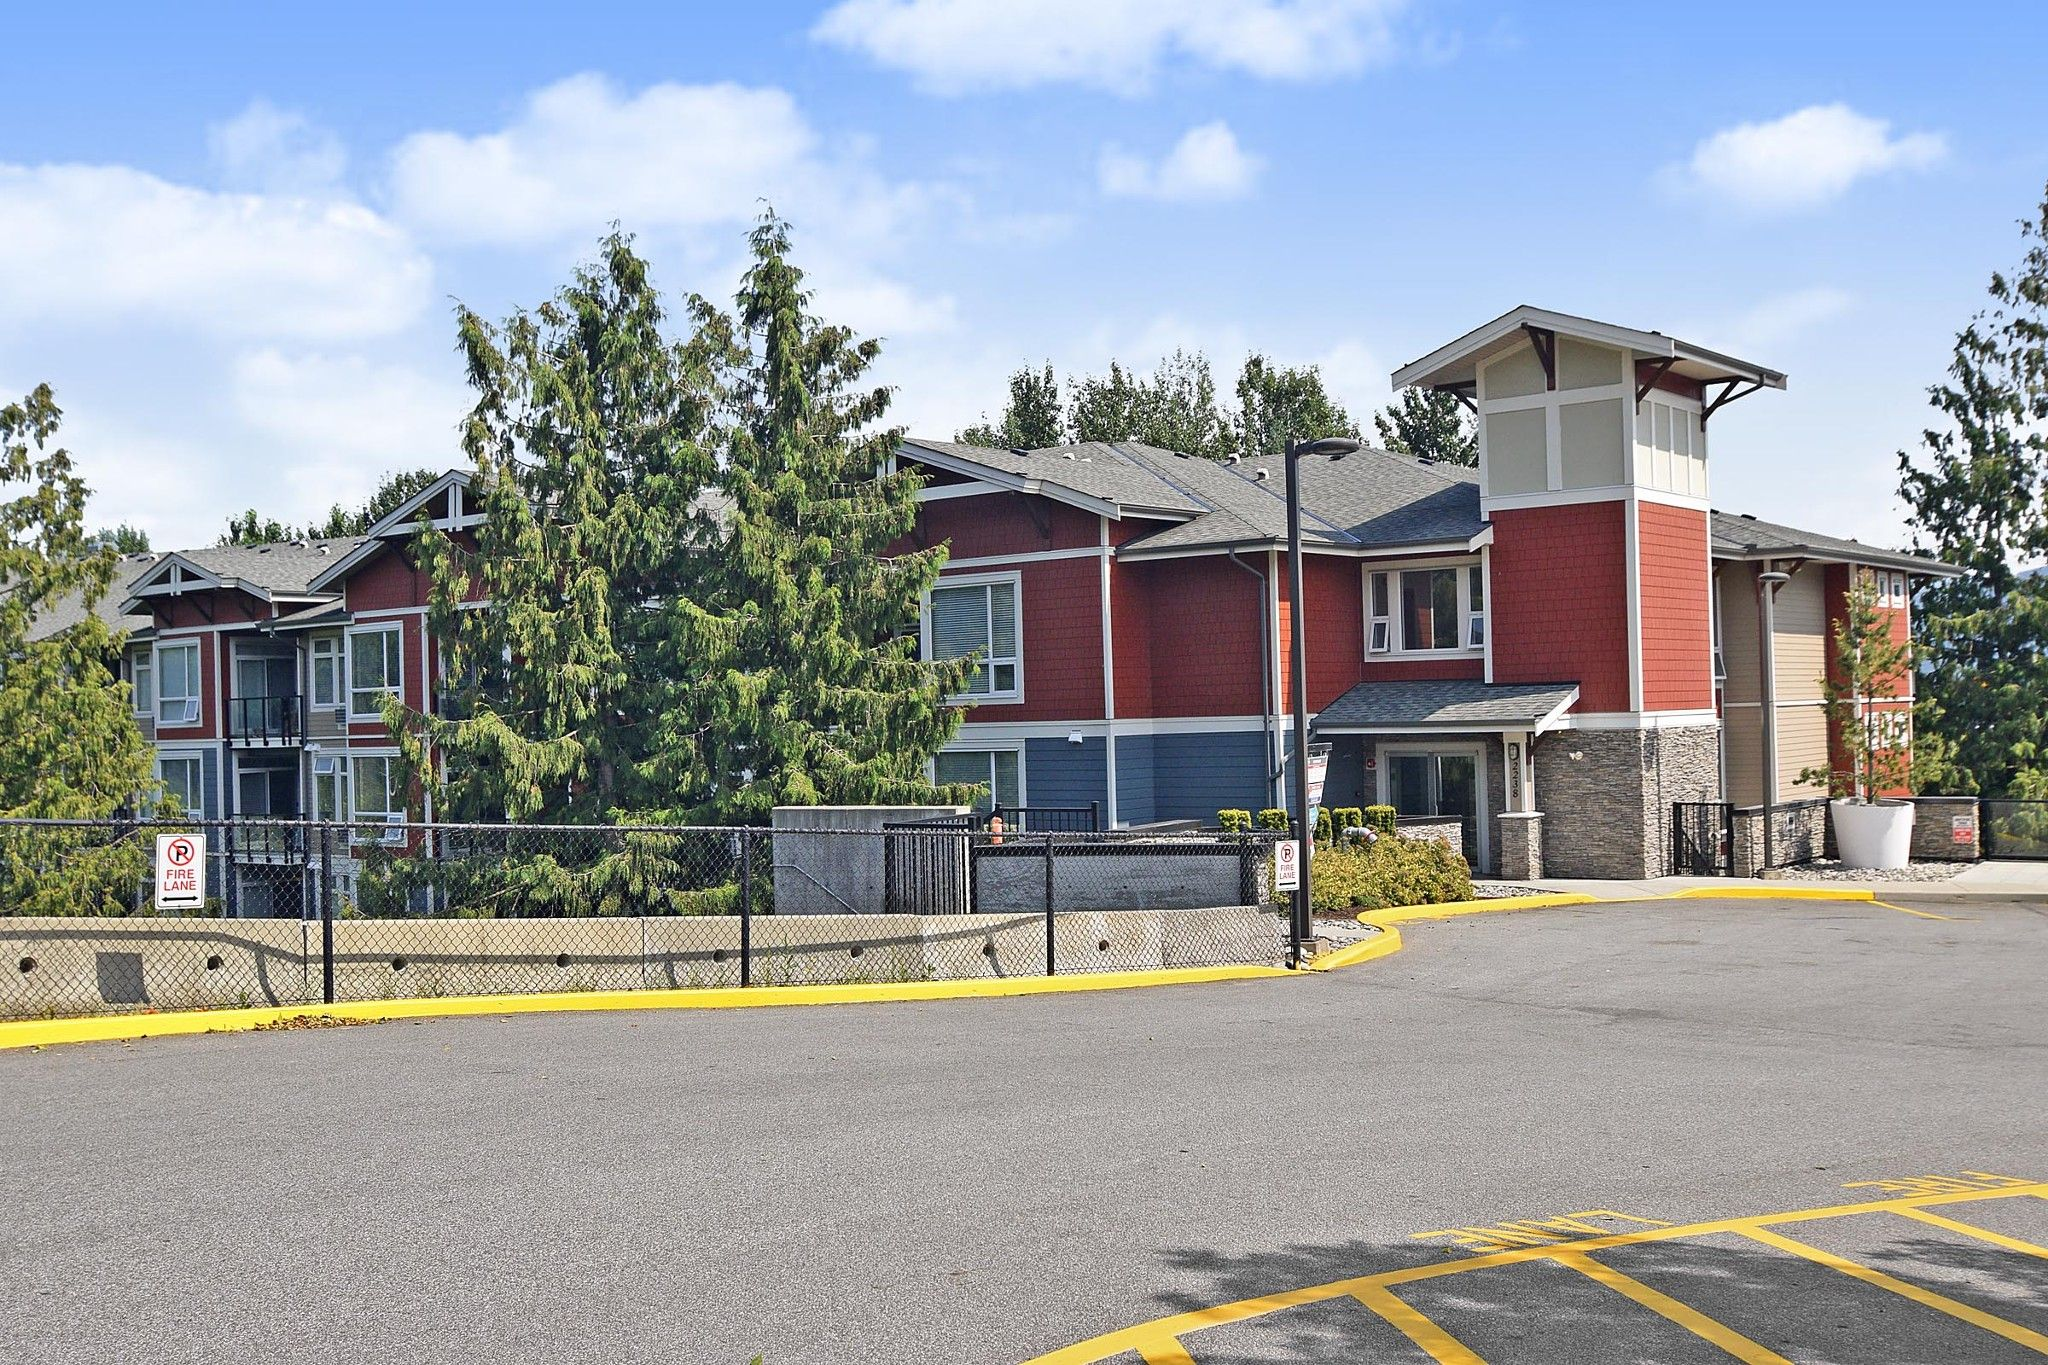 """Main Photo: 204 2238 WHATCOM Road in Abbotsford: Abbotsford East Condo for sale in """"Waterleaf"""" : MLS®# R2391308"""